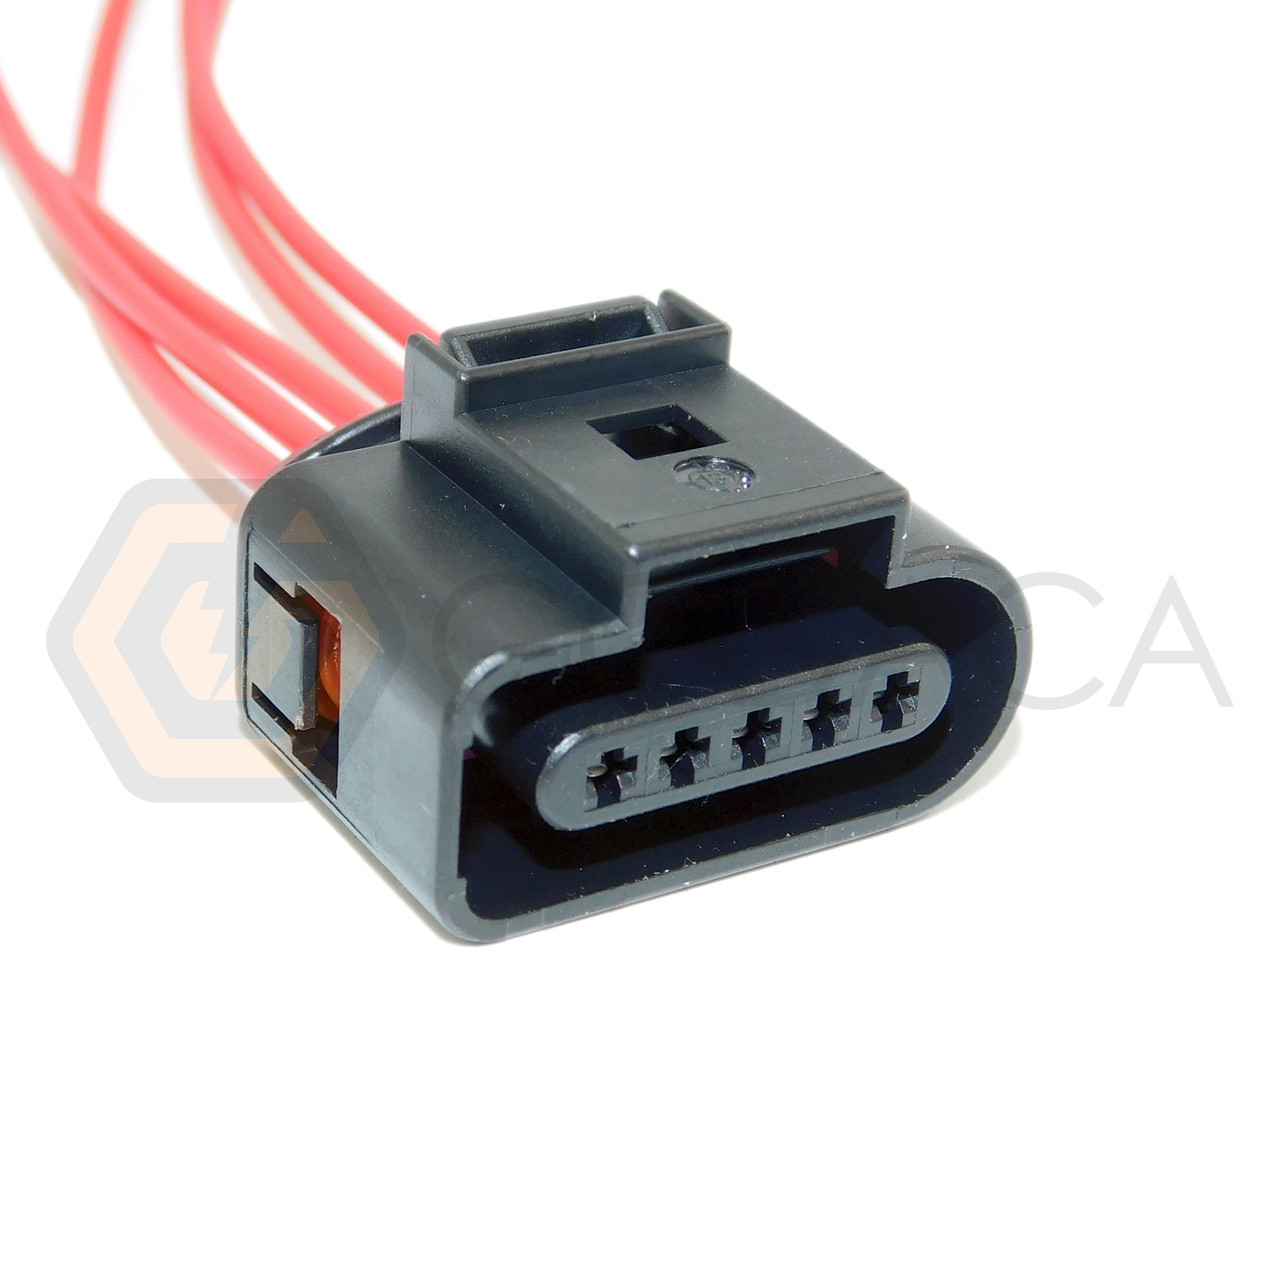 1x Connector 5 pin 5-way for Air Flow Meter 4H0 973 715